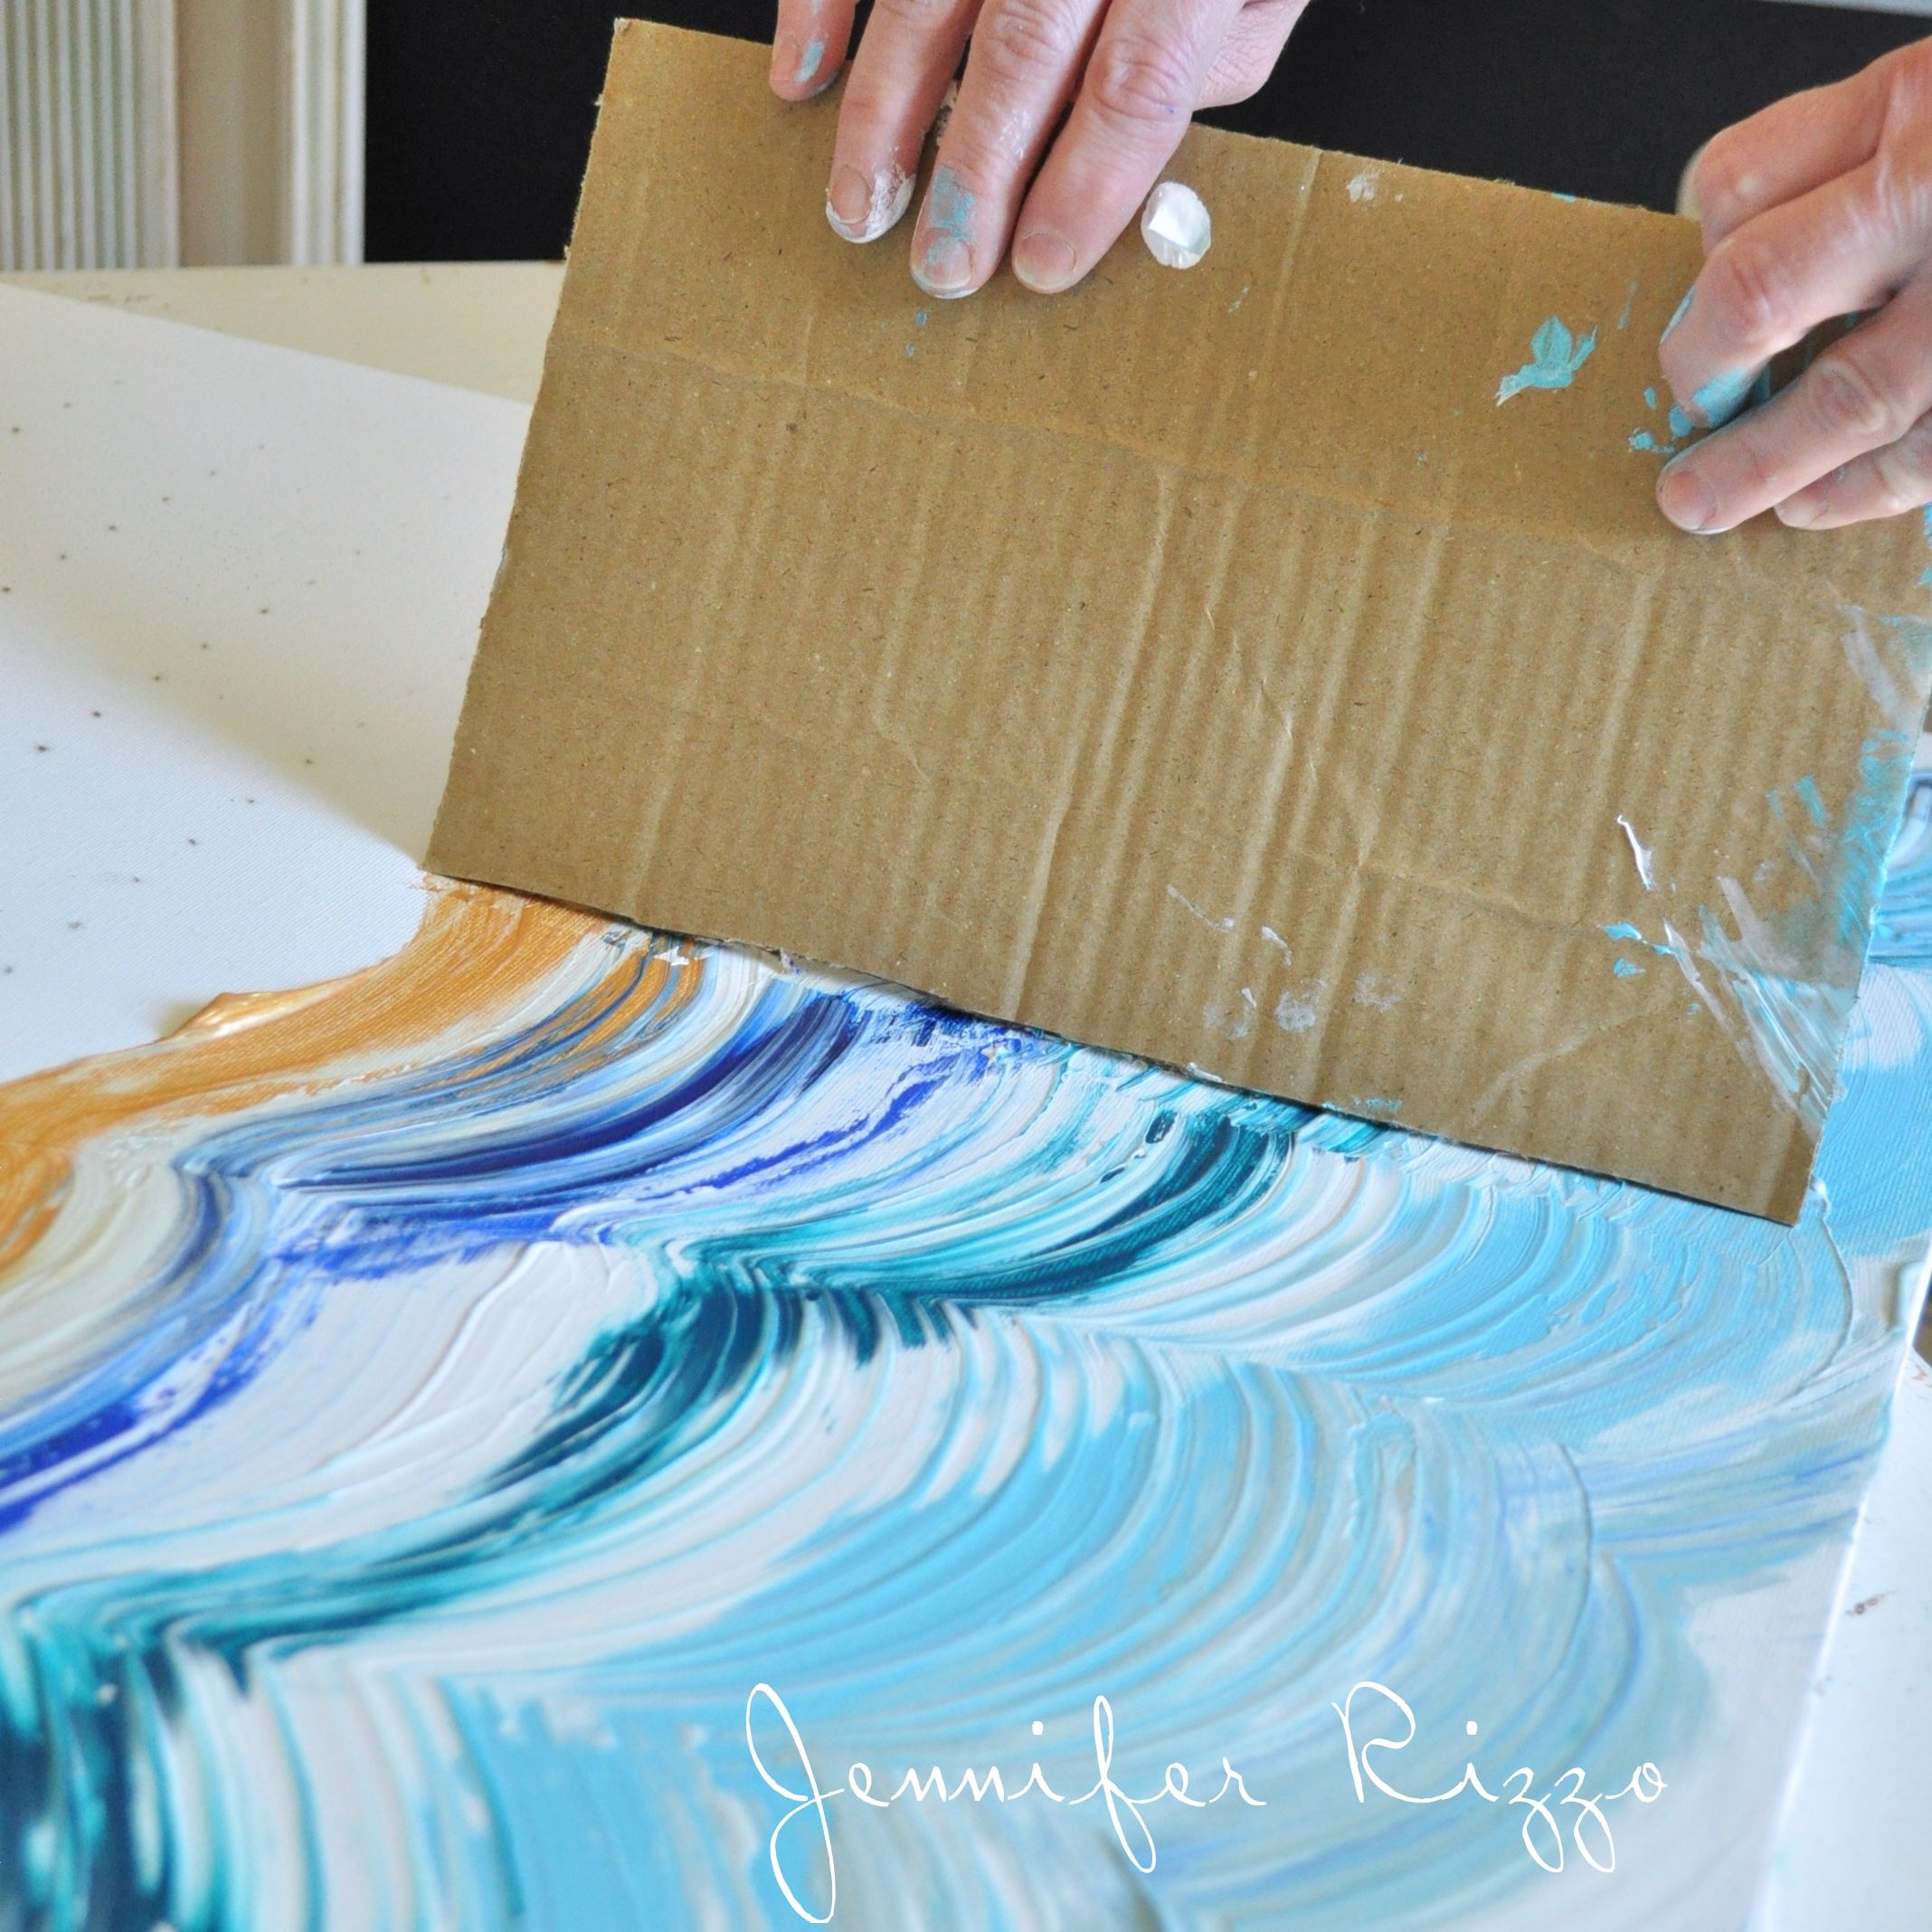 Drag Your Card Board Across Your Paint To Make Your Design A - Abstract art canvas painting ideas